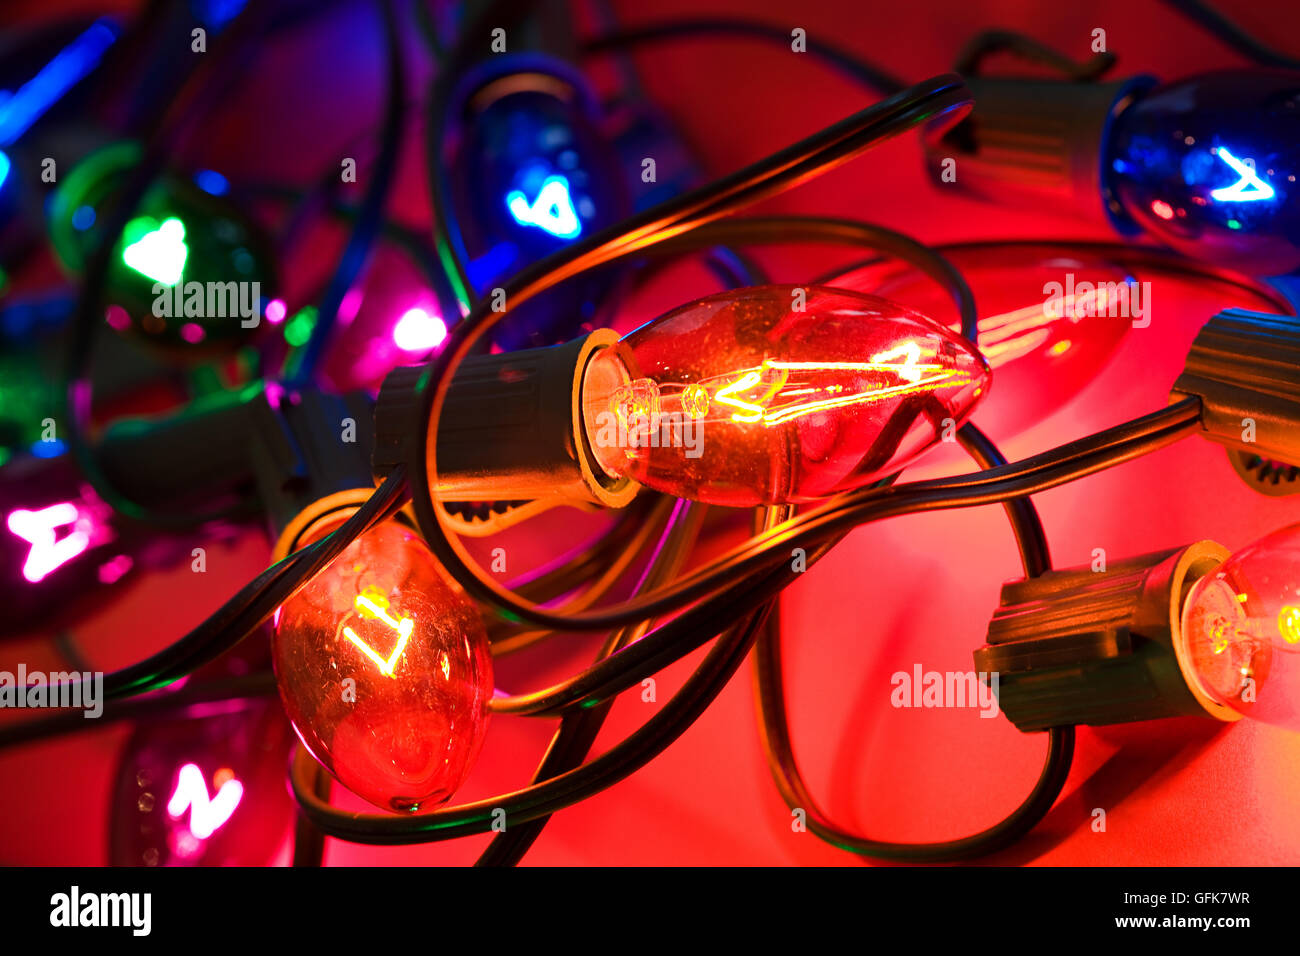 Incandescent Christmas Lights.Images Of Traditional C9 Style Incandescent Christmas Light